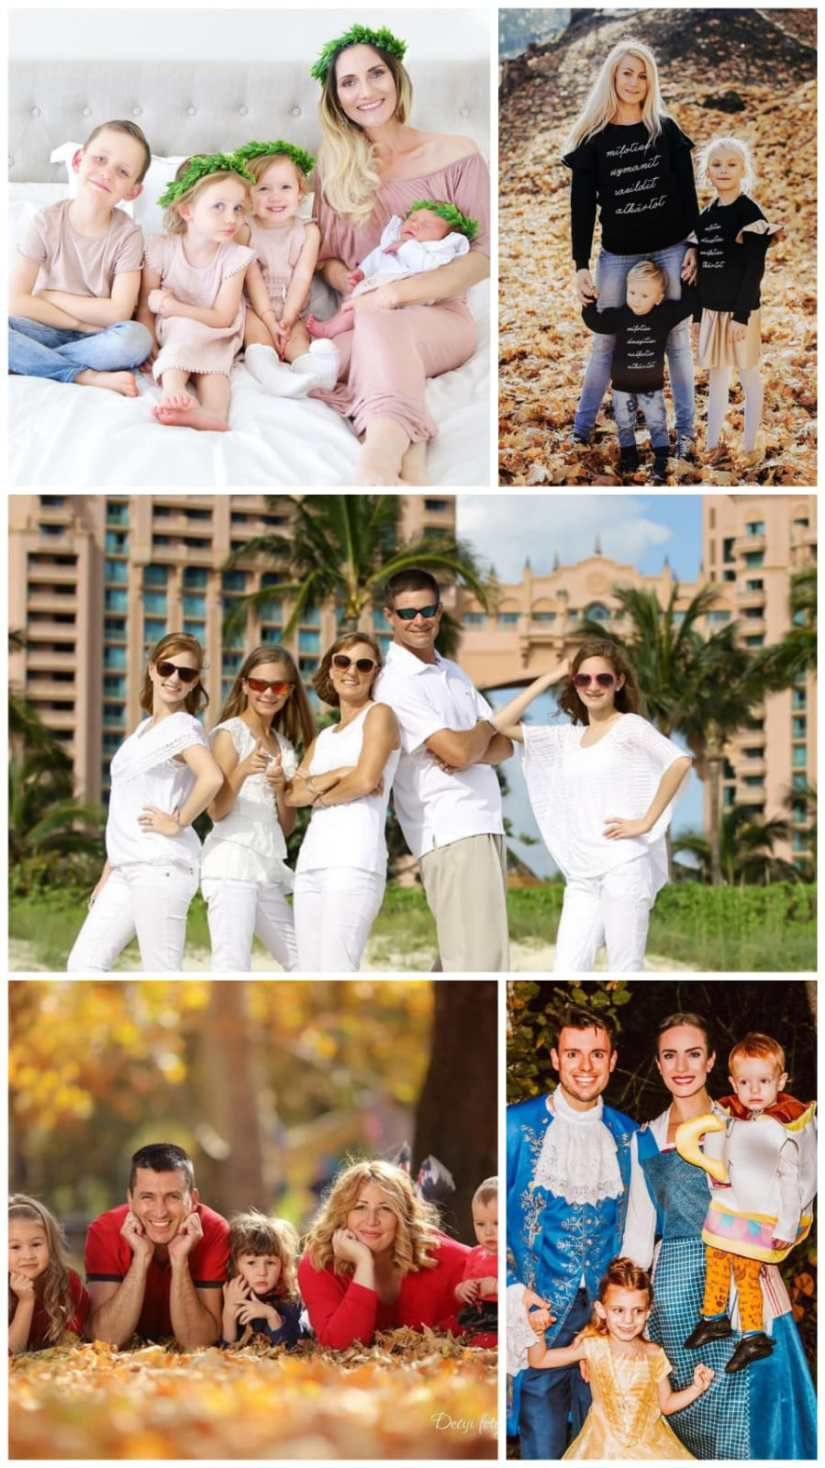 Family Portrait picture Clothing Ideas